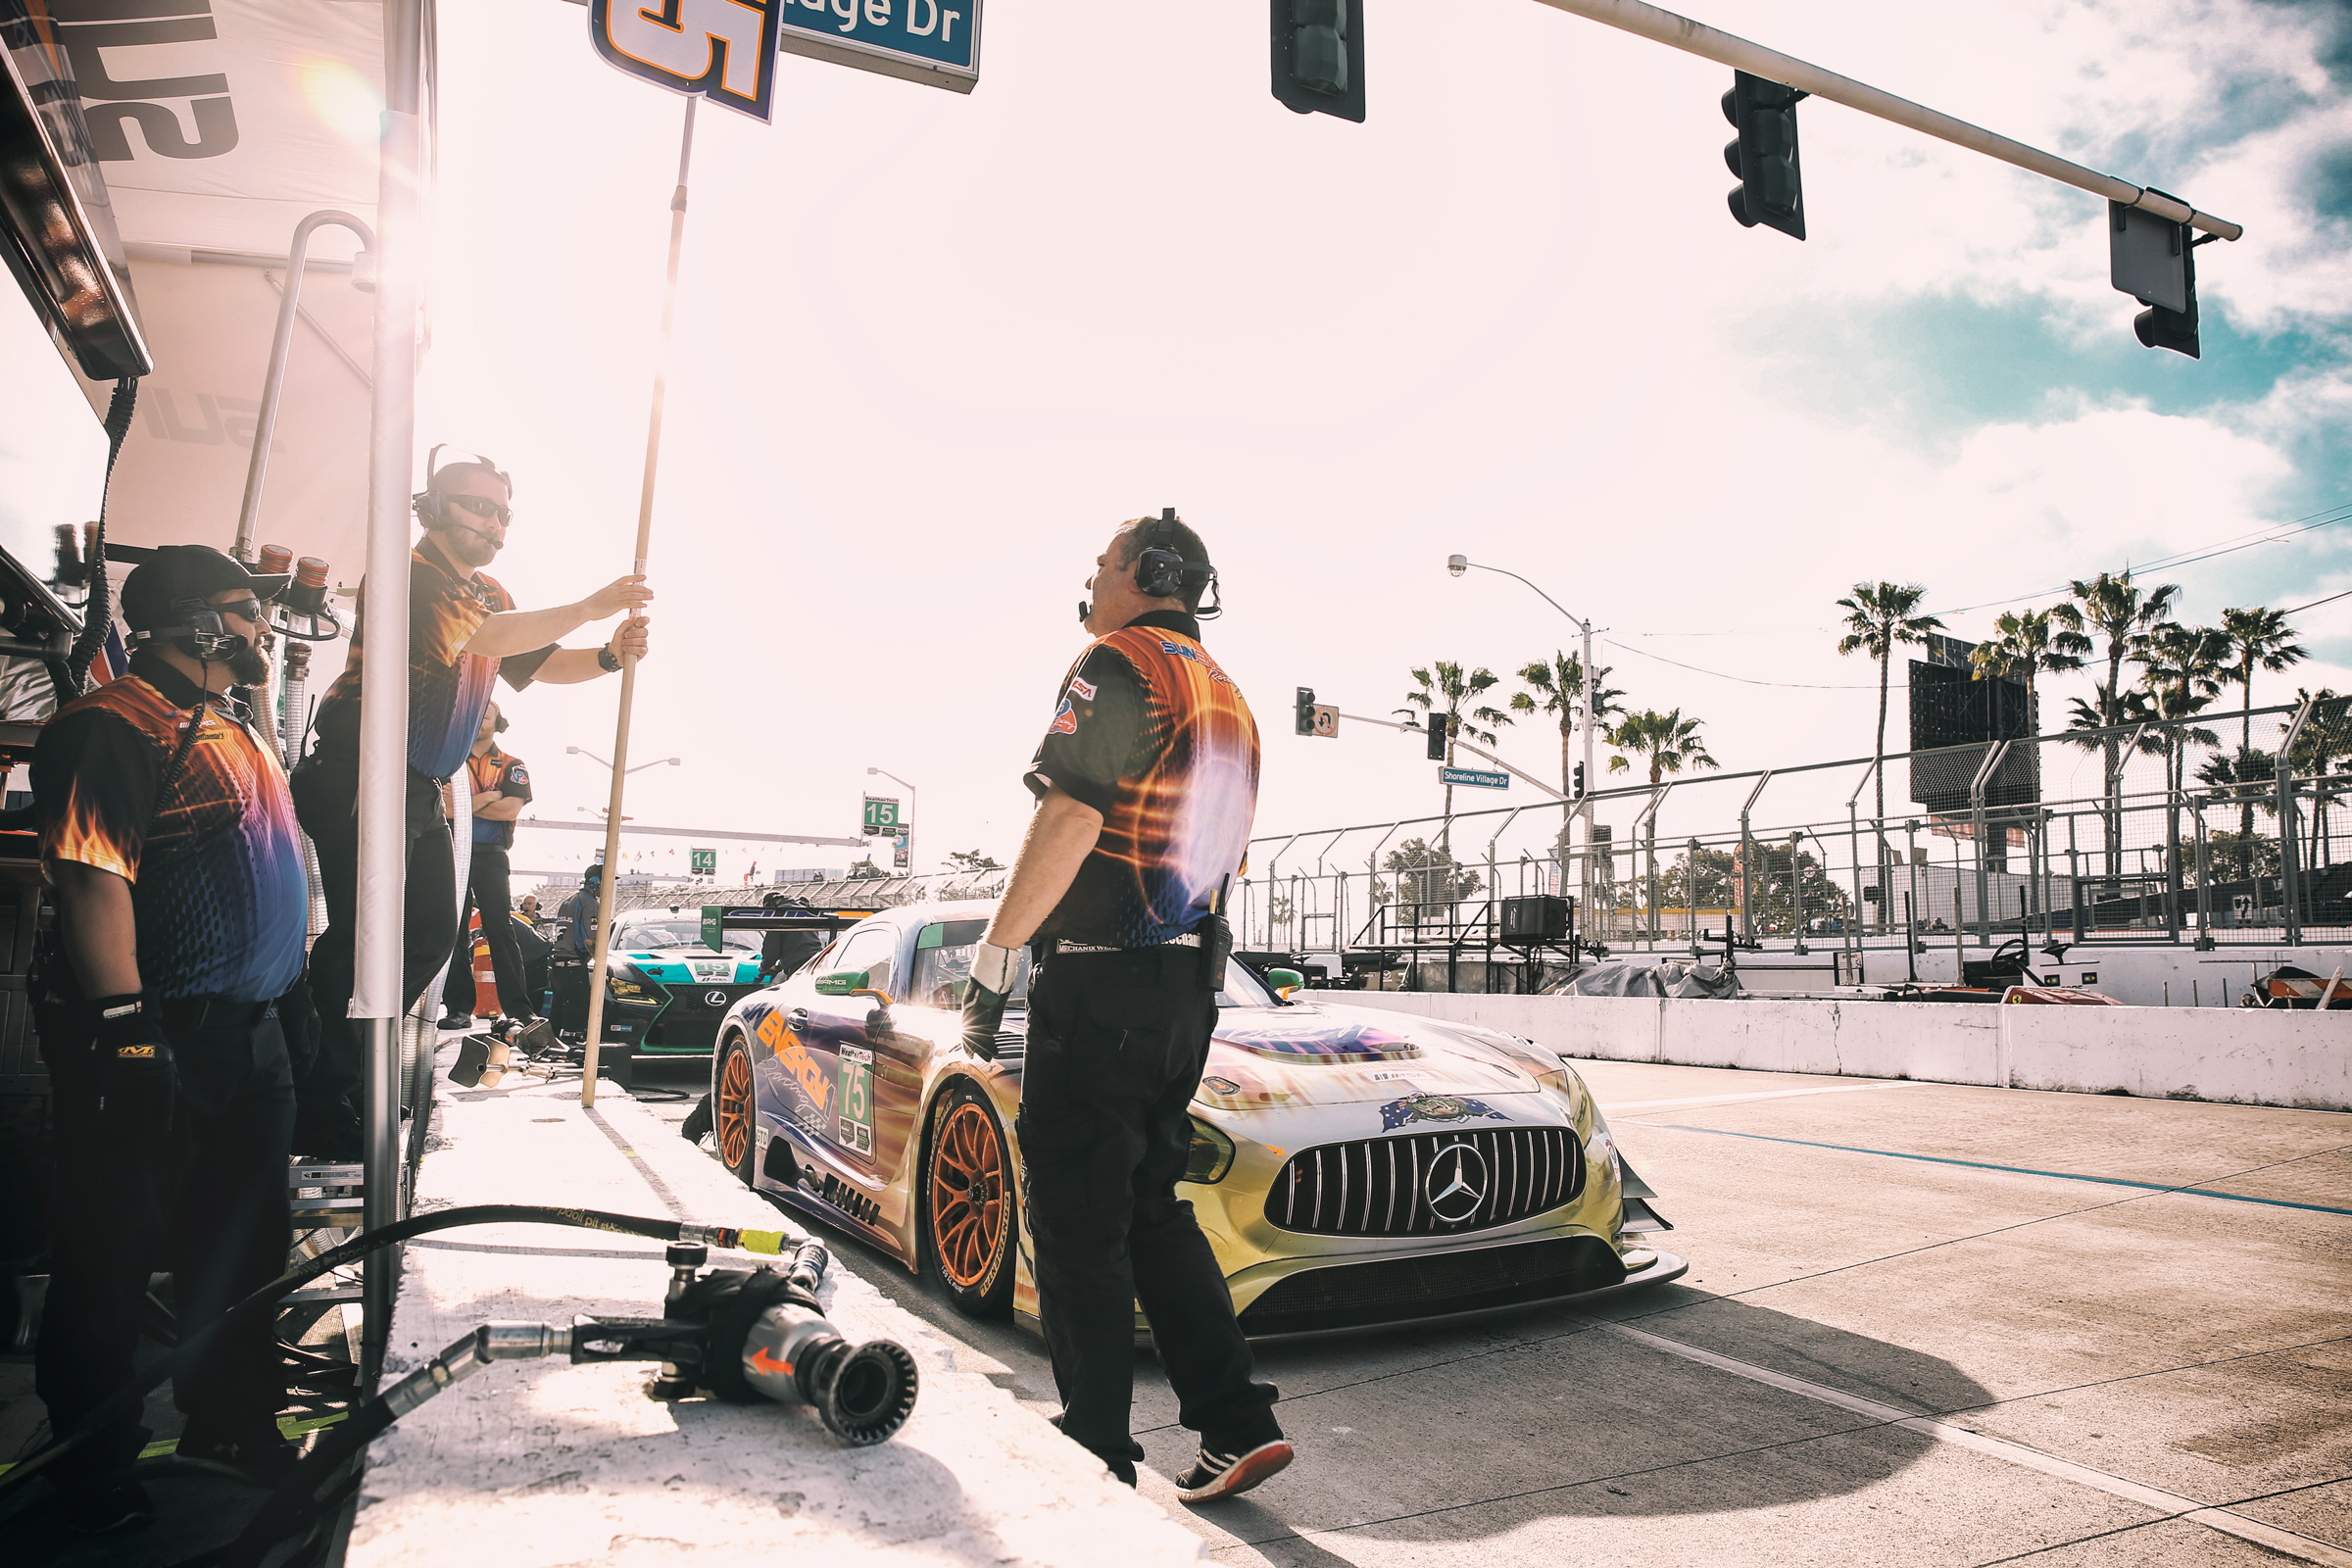 Mechaniker und Mercedes AMG-GT3 von SunEnergy in der Boxengasse von Long Beach, Los Angeles. Mechanics and Mercedes AMG-GT3 of SunEnergy in the pitlane of Long Beach, Los Angeles